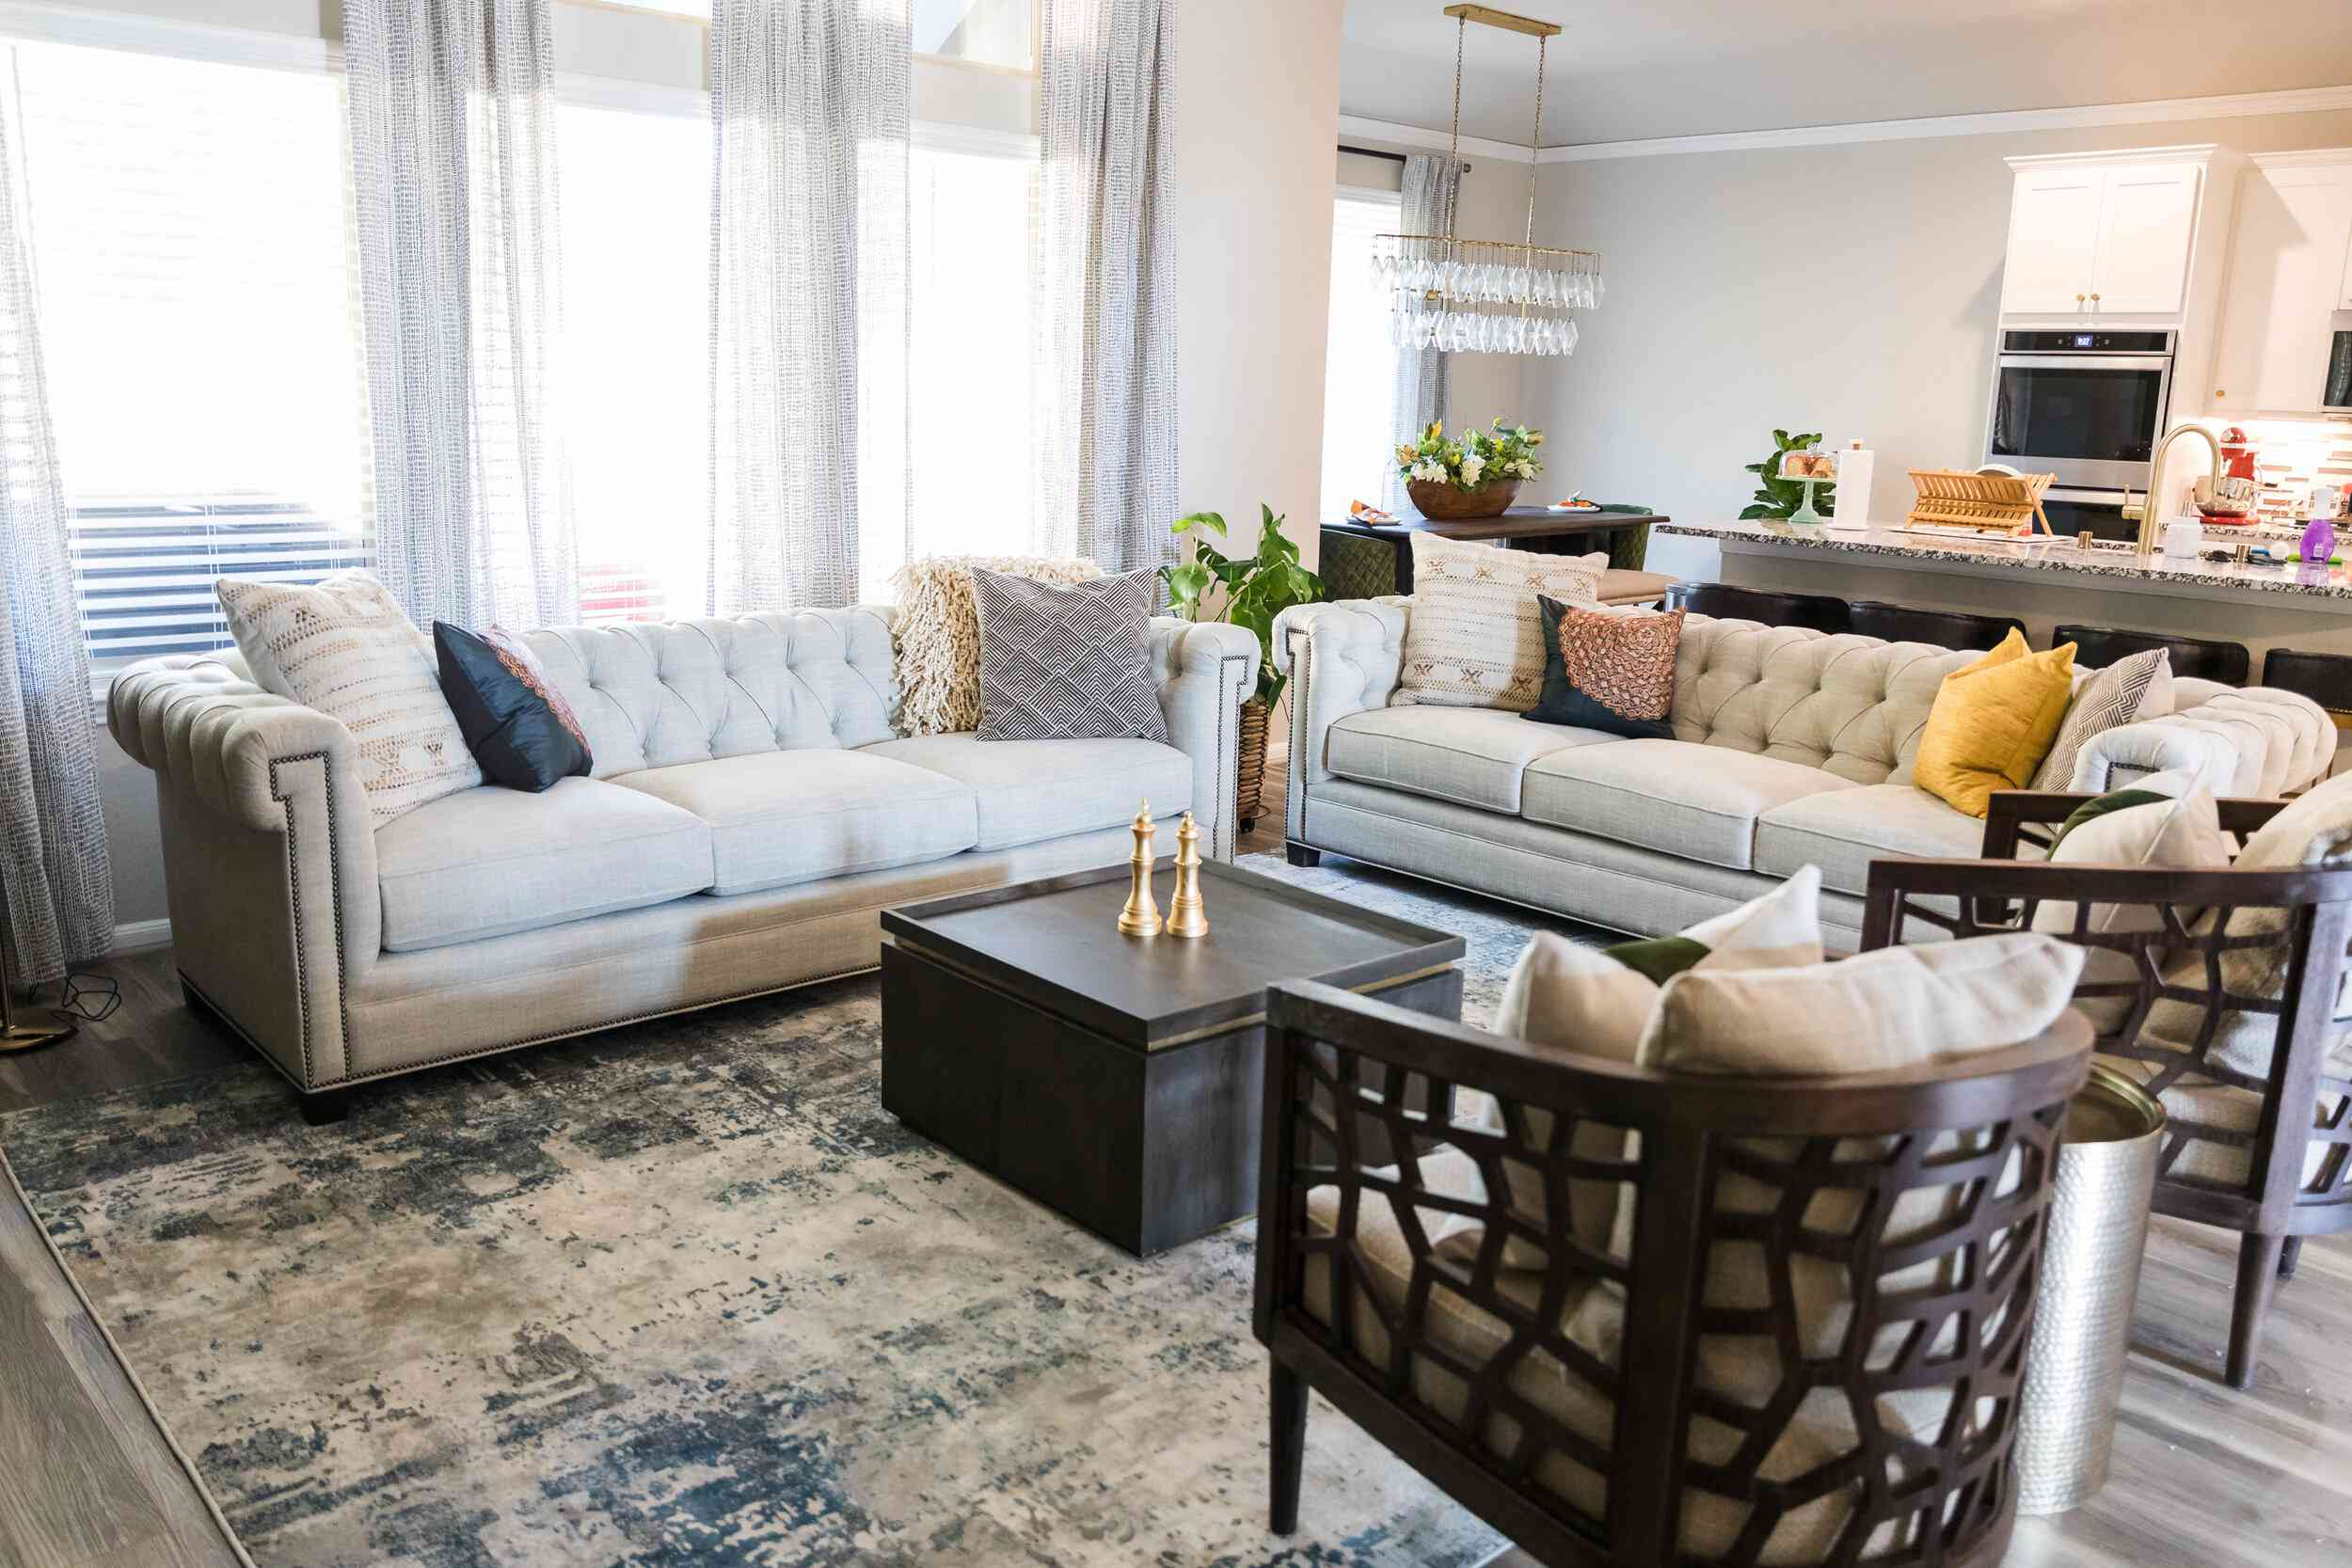 living room with tuffed couches